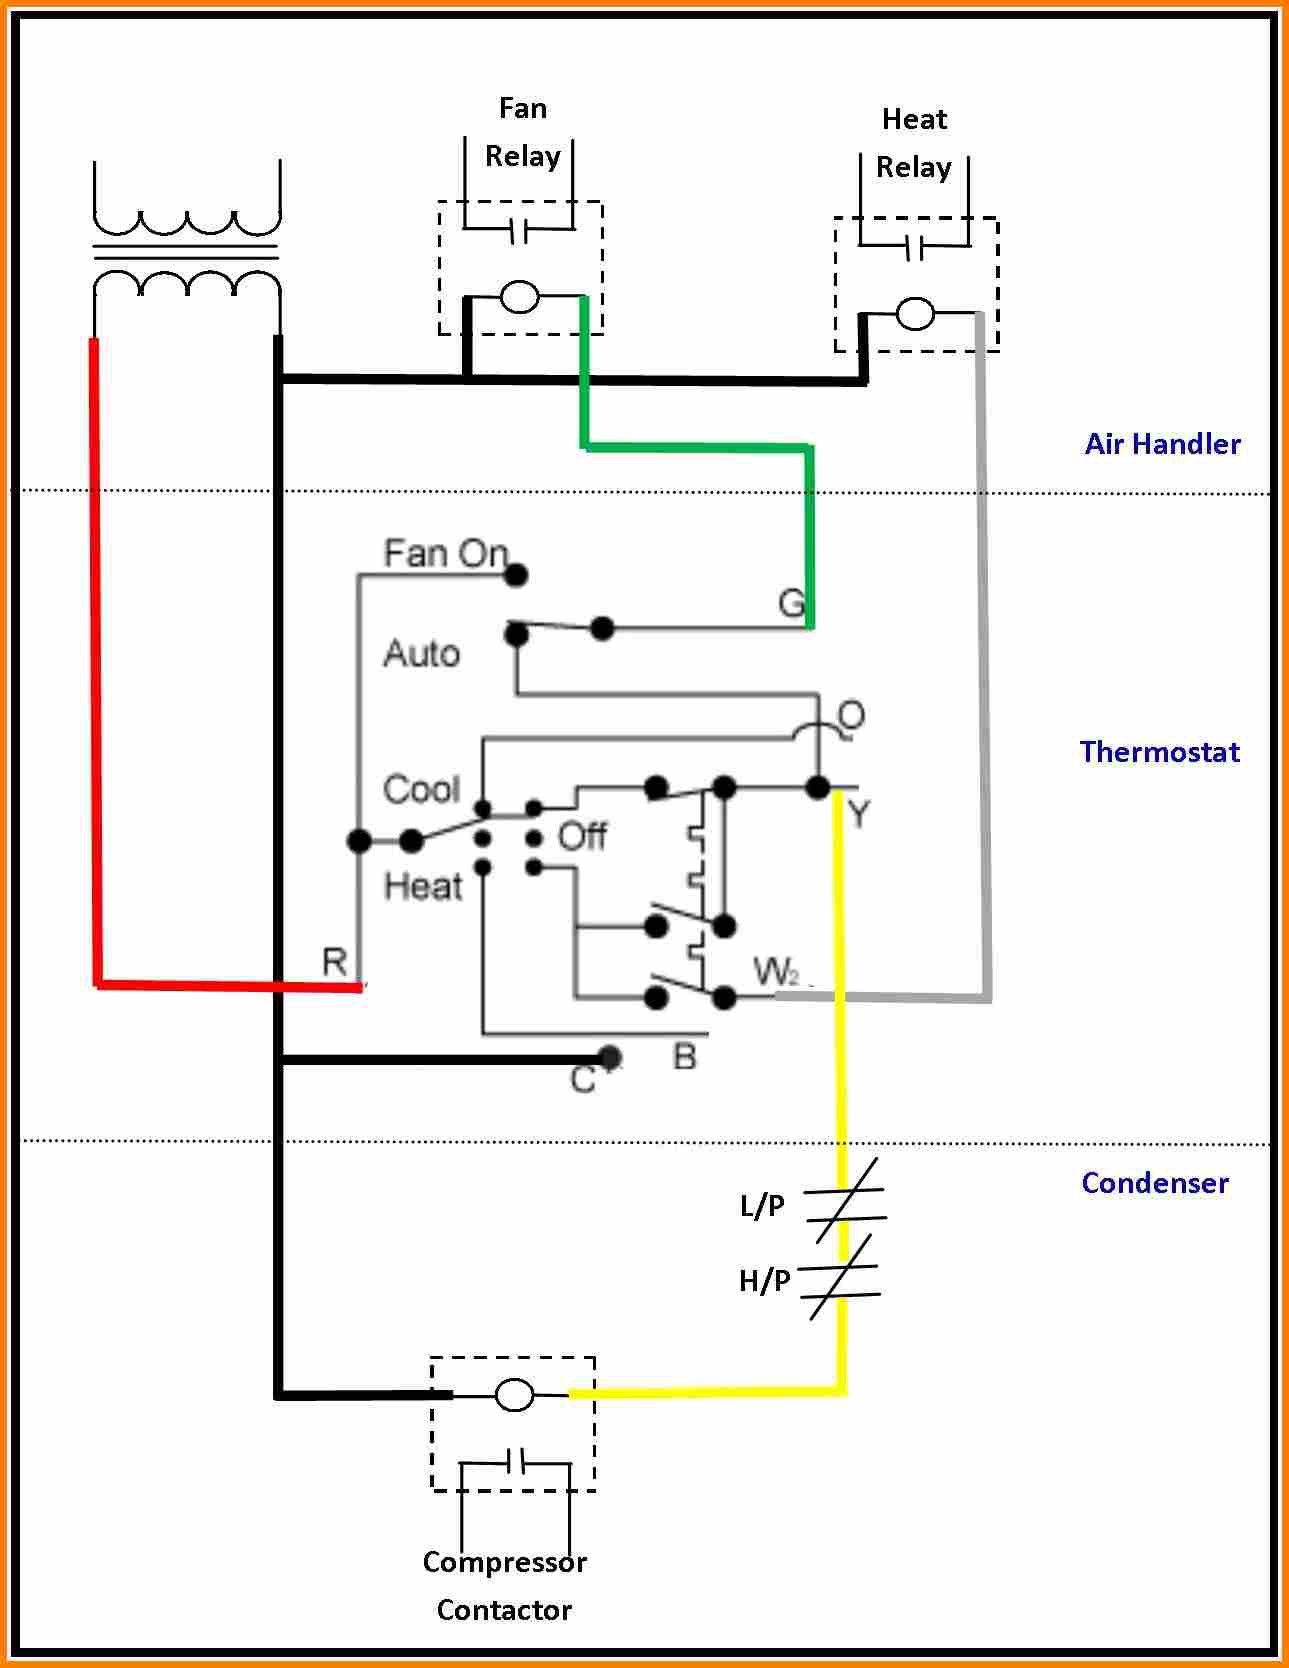 understanding electricity and wiring diagrams for hvac r 2009 hyundai accent radio diagram electric heat strip gallery